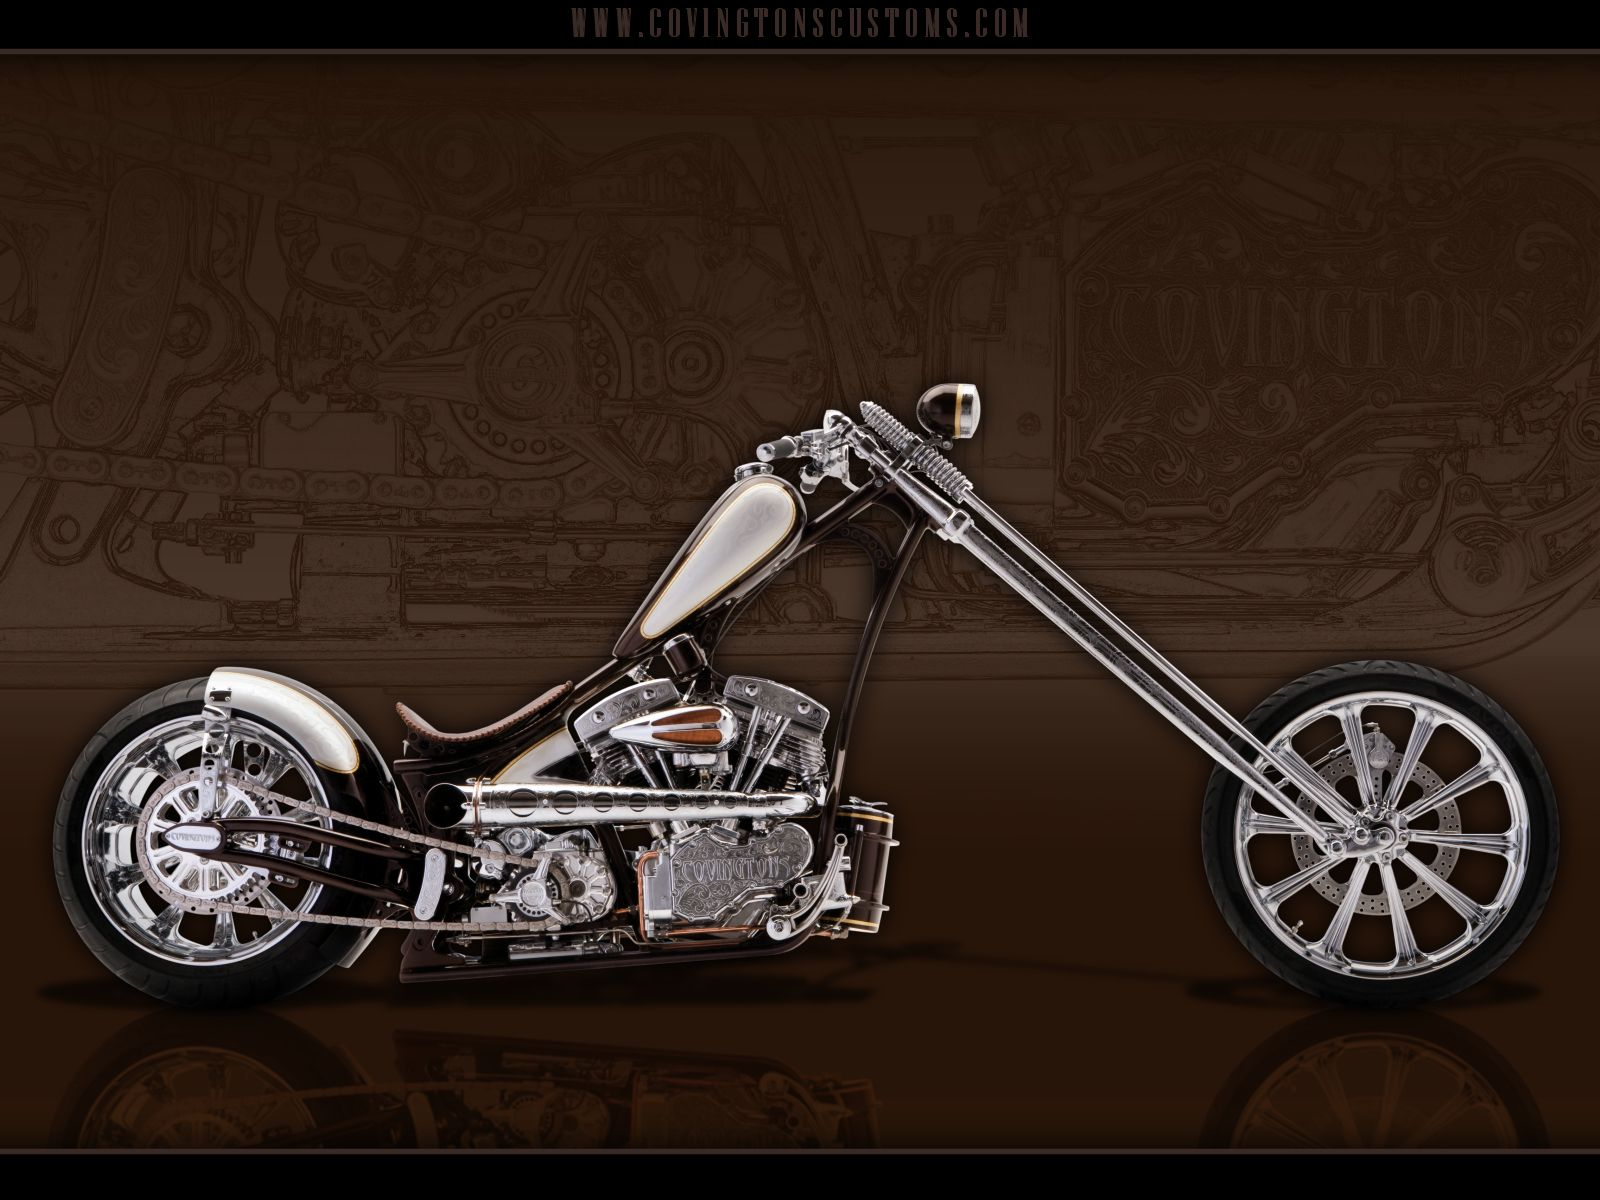 Whiskey Chopper With Images Motorcycle Wallpaper Motorcycle